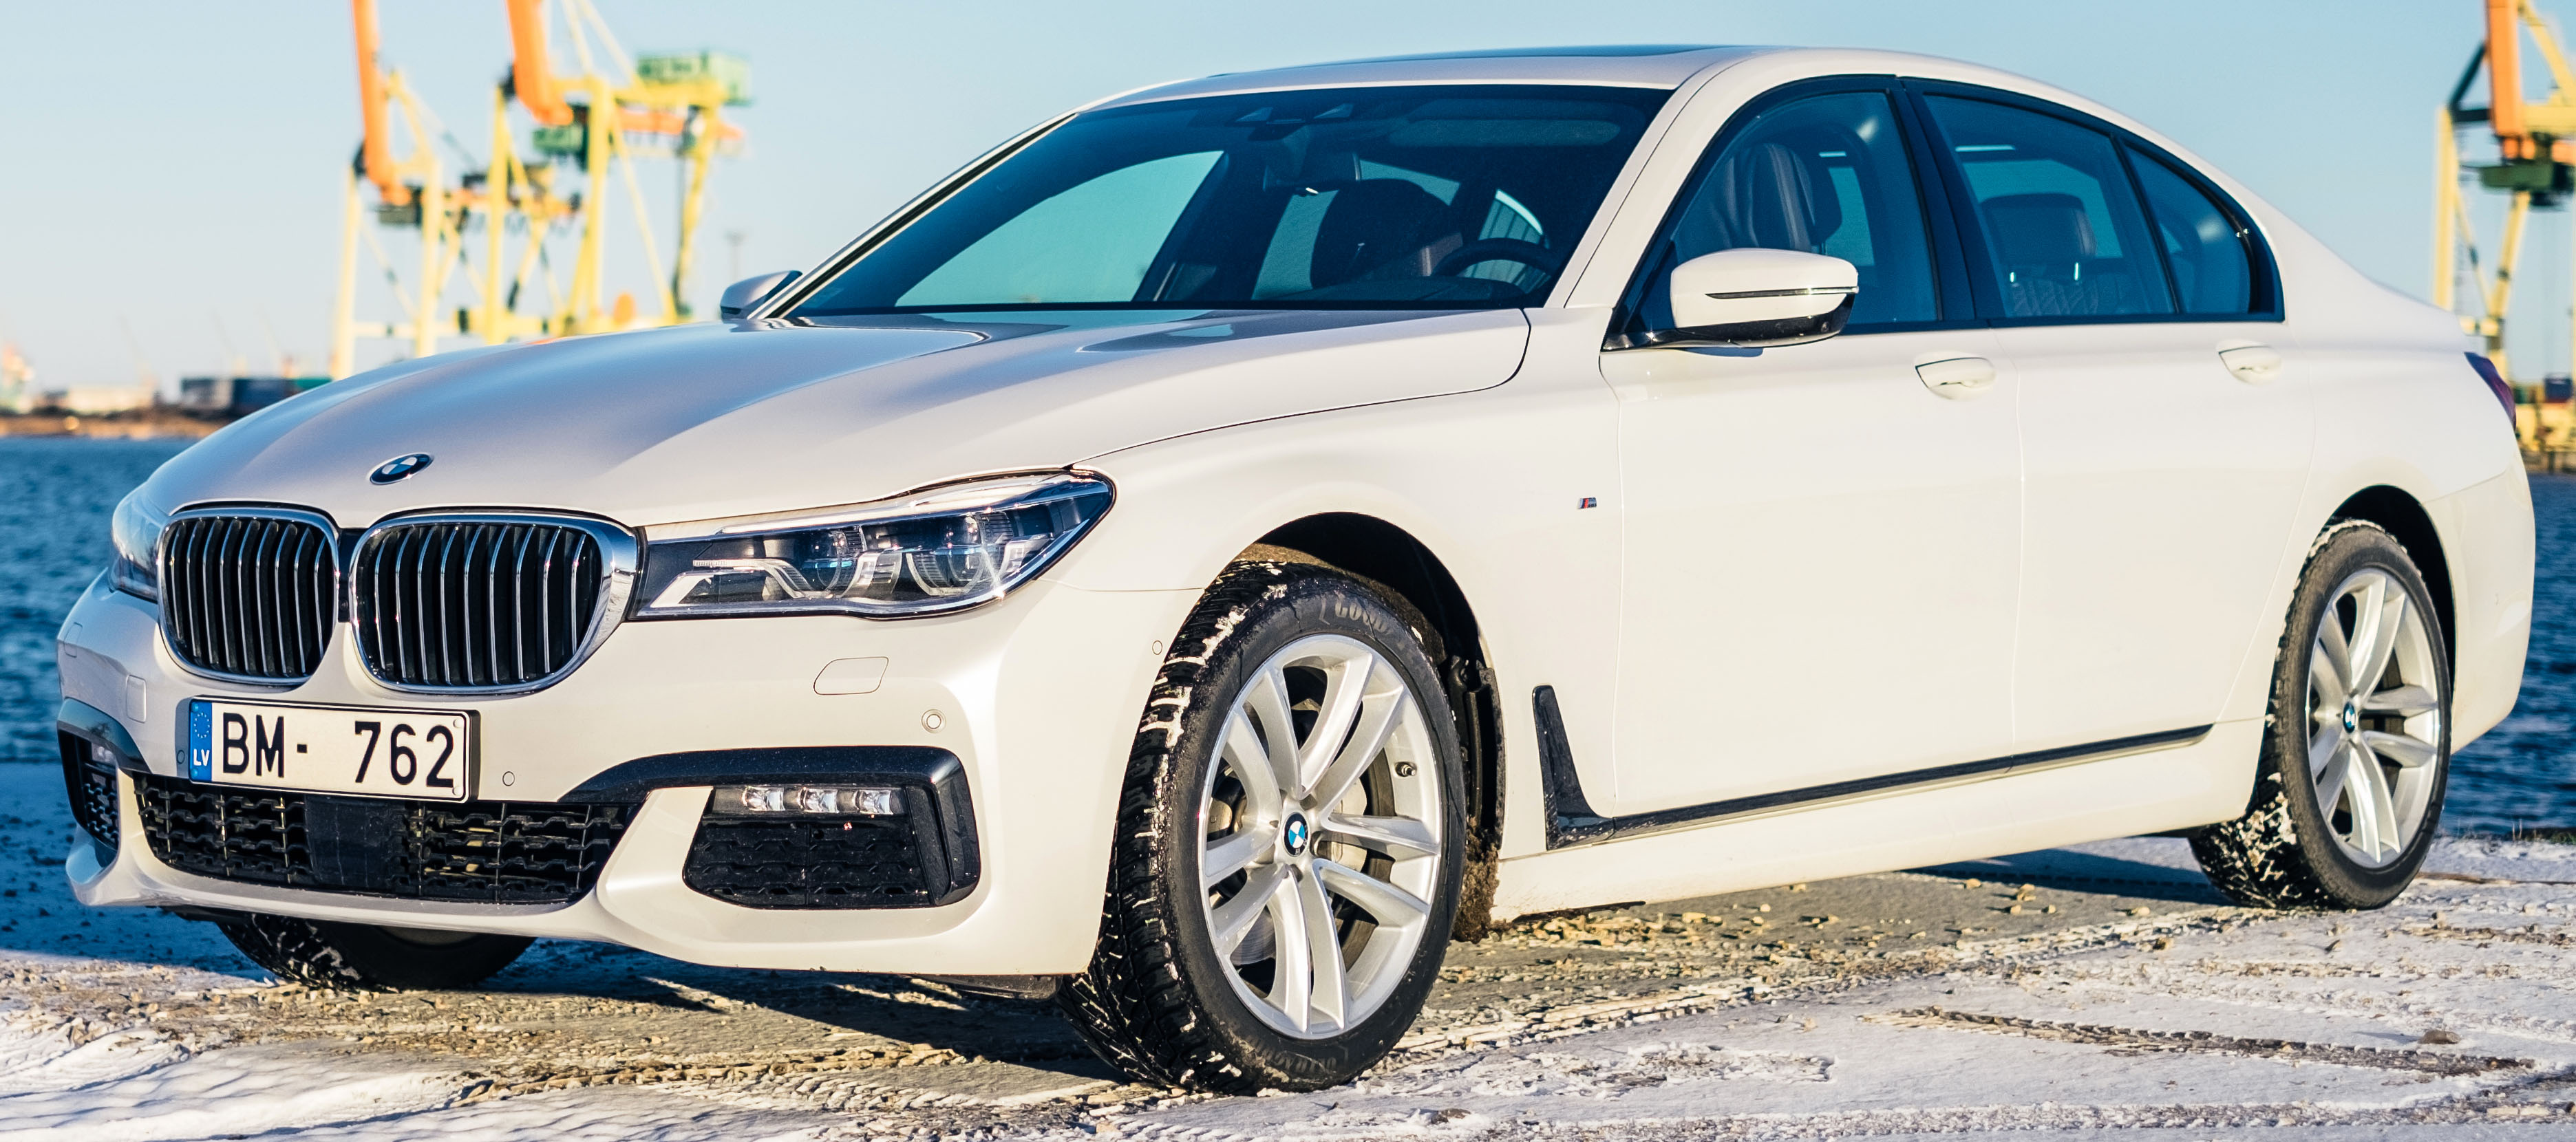 File2016 BMW 7 Series G11 Sedan Front View